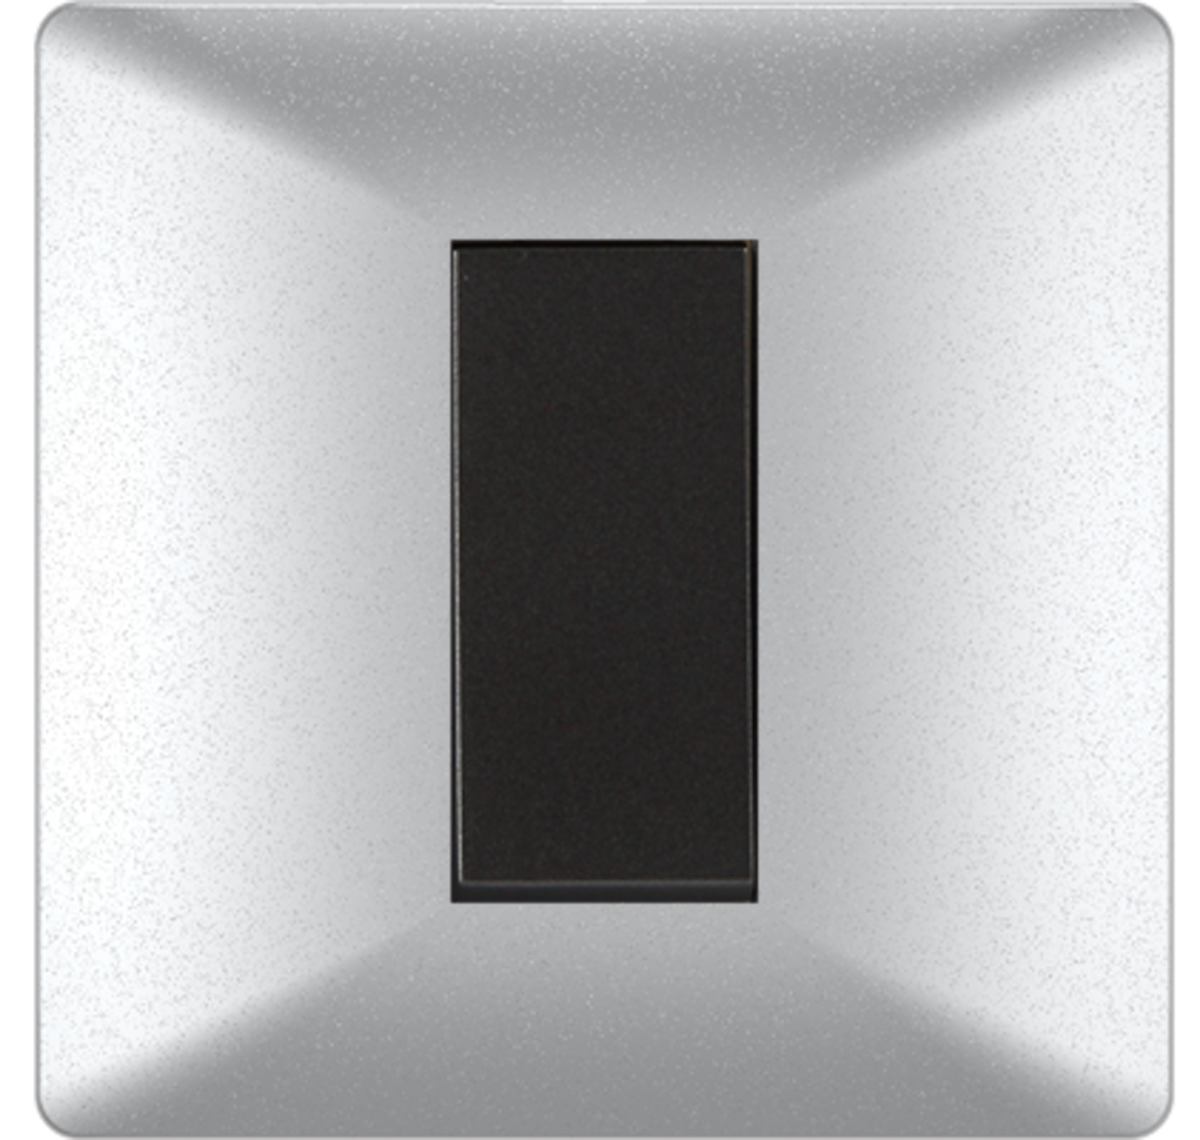 Crabtree - 1 M cover plate misty silver